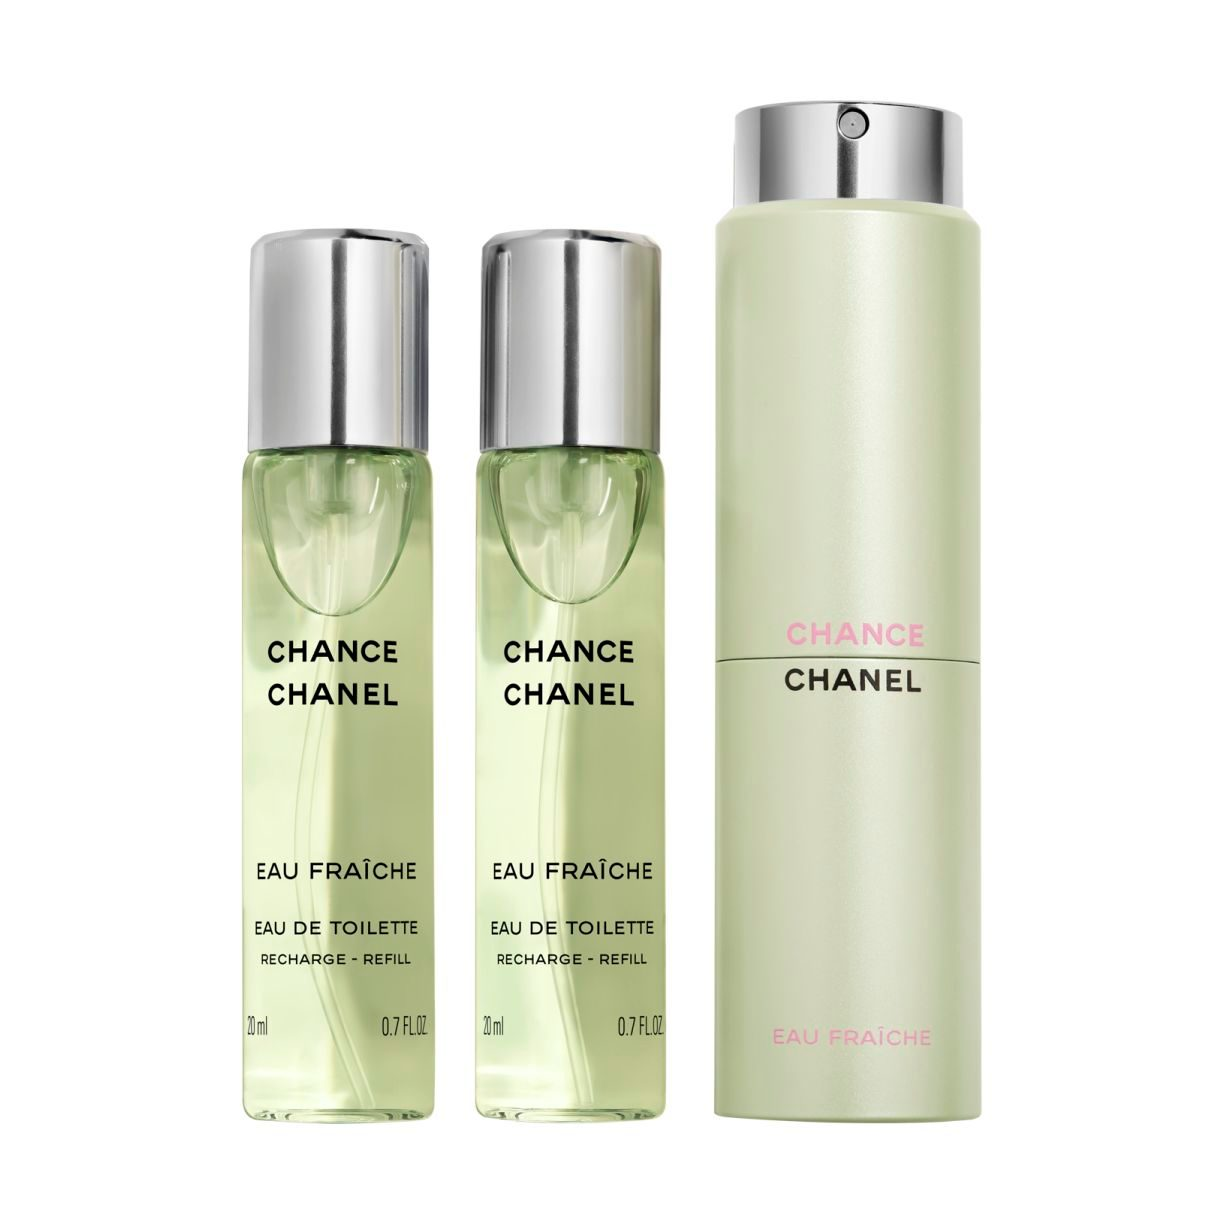 CHANCE EAU FRAÎCHE WODA TOALETOWA TWIST AND SPRAY